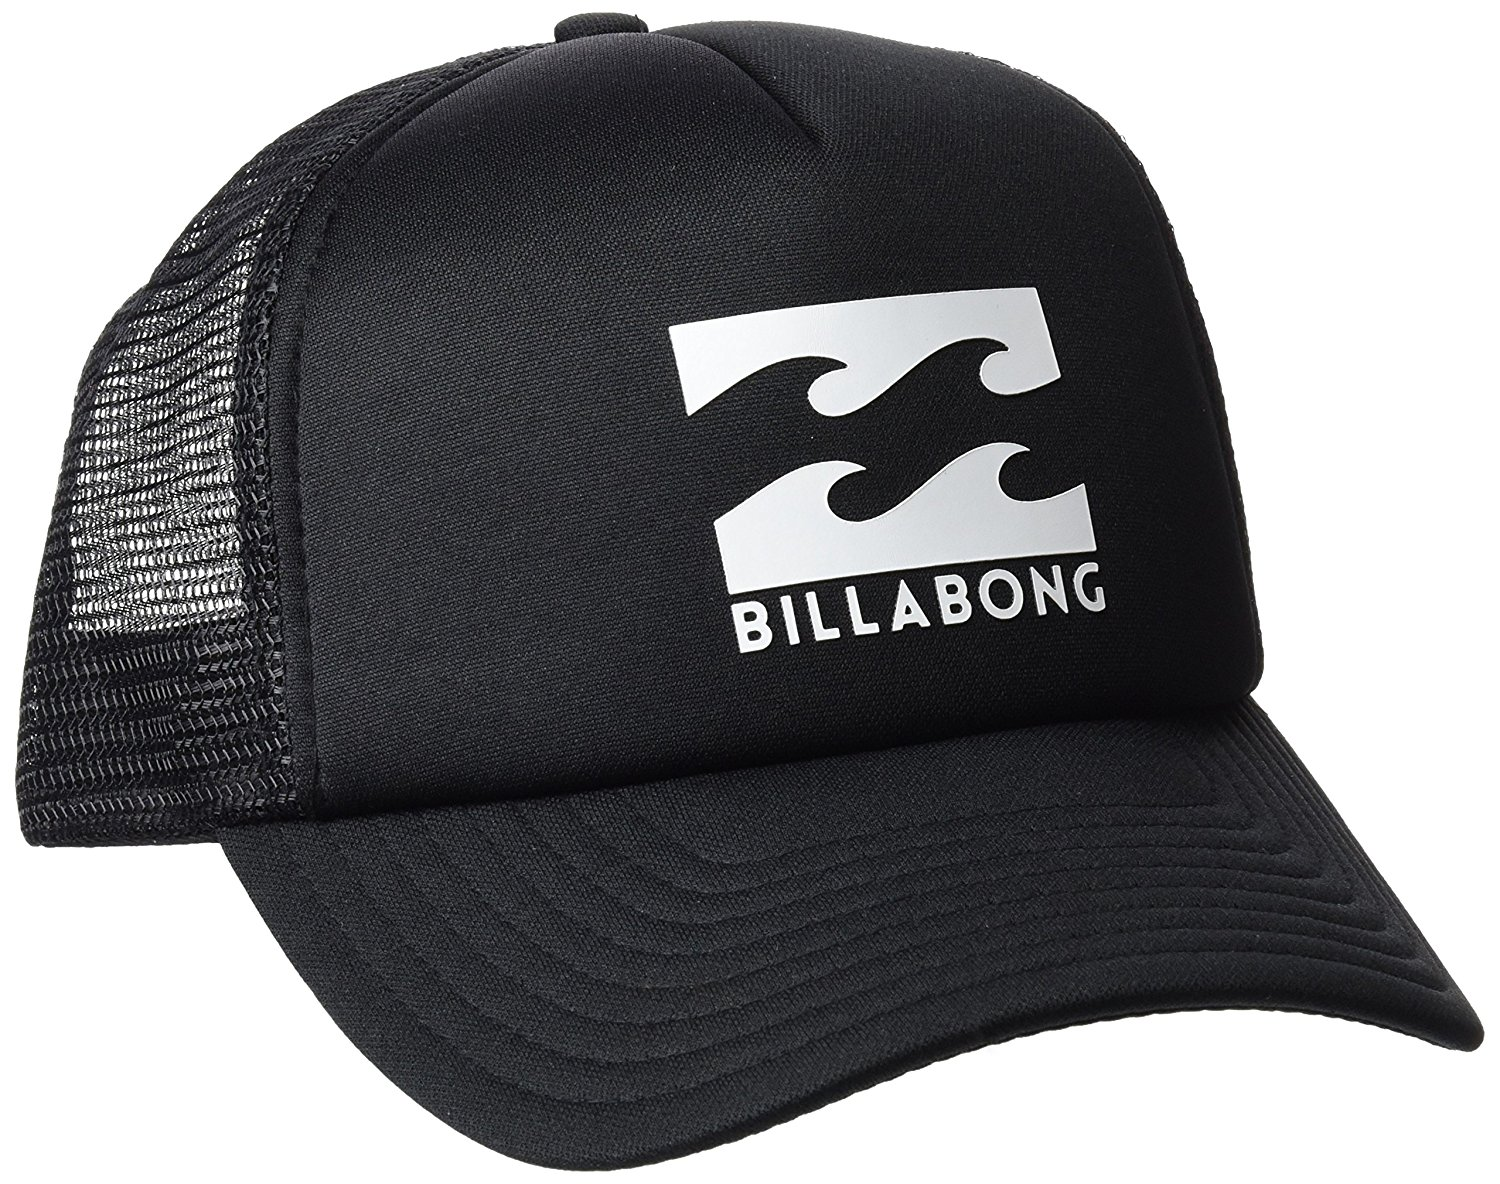 online store 08934 b197b Get Quotations · Billabong Podium Trucker Cap